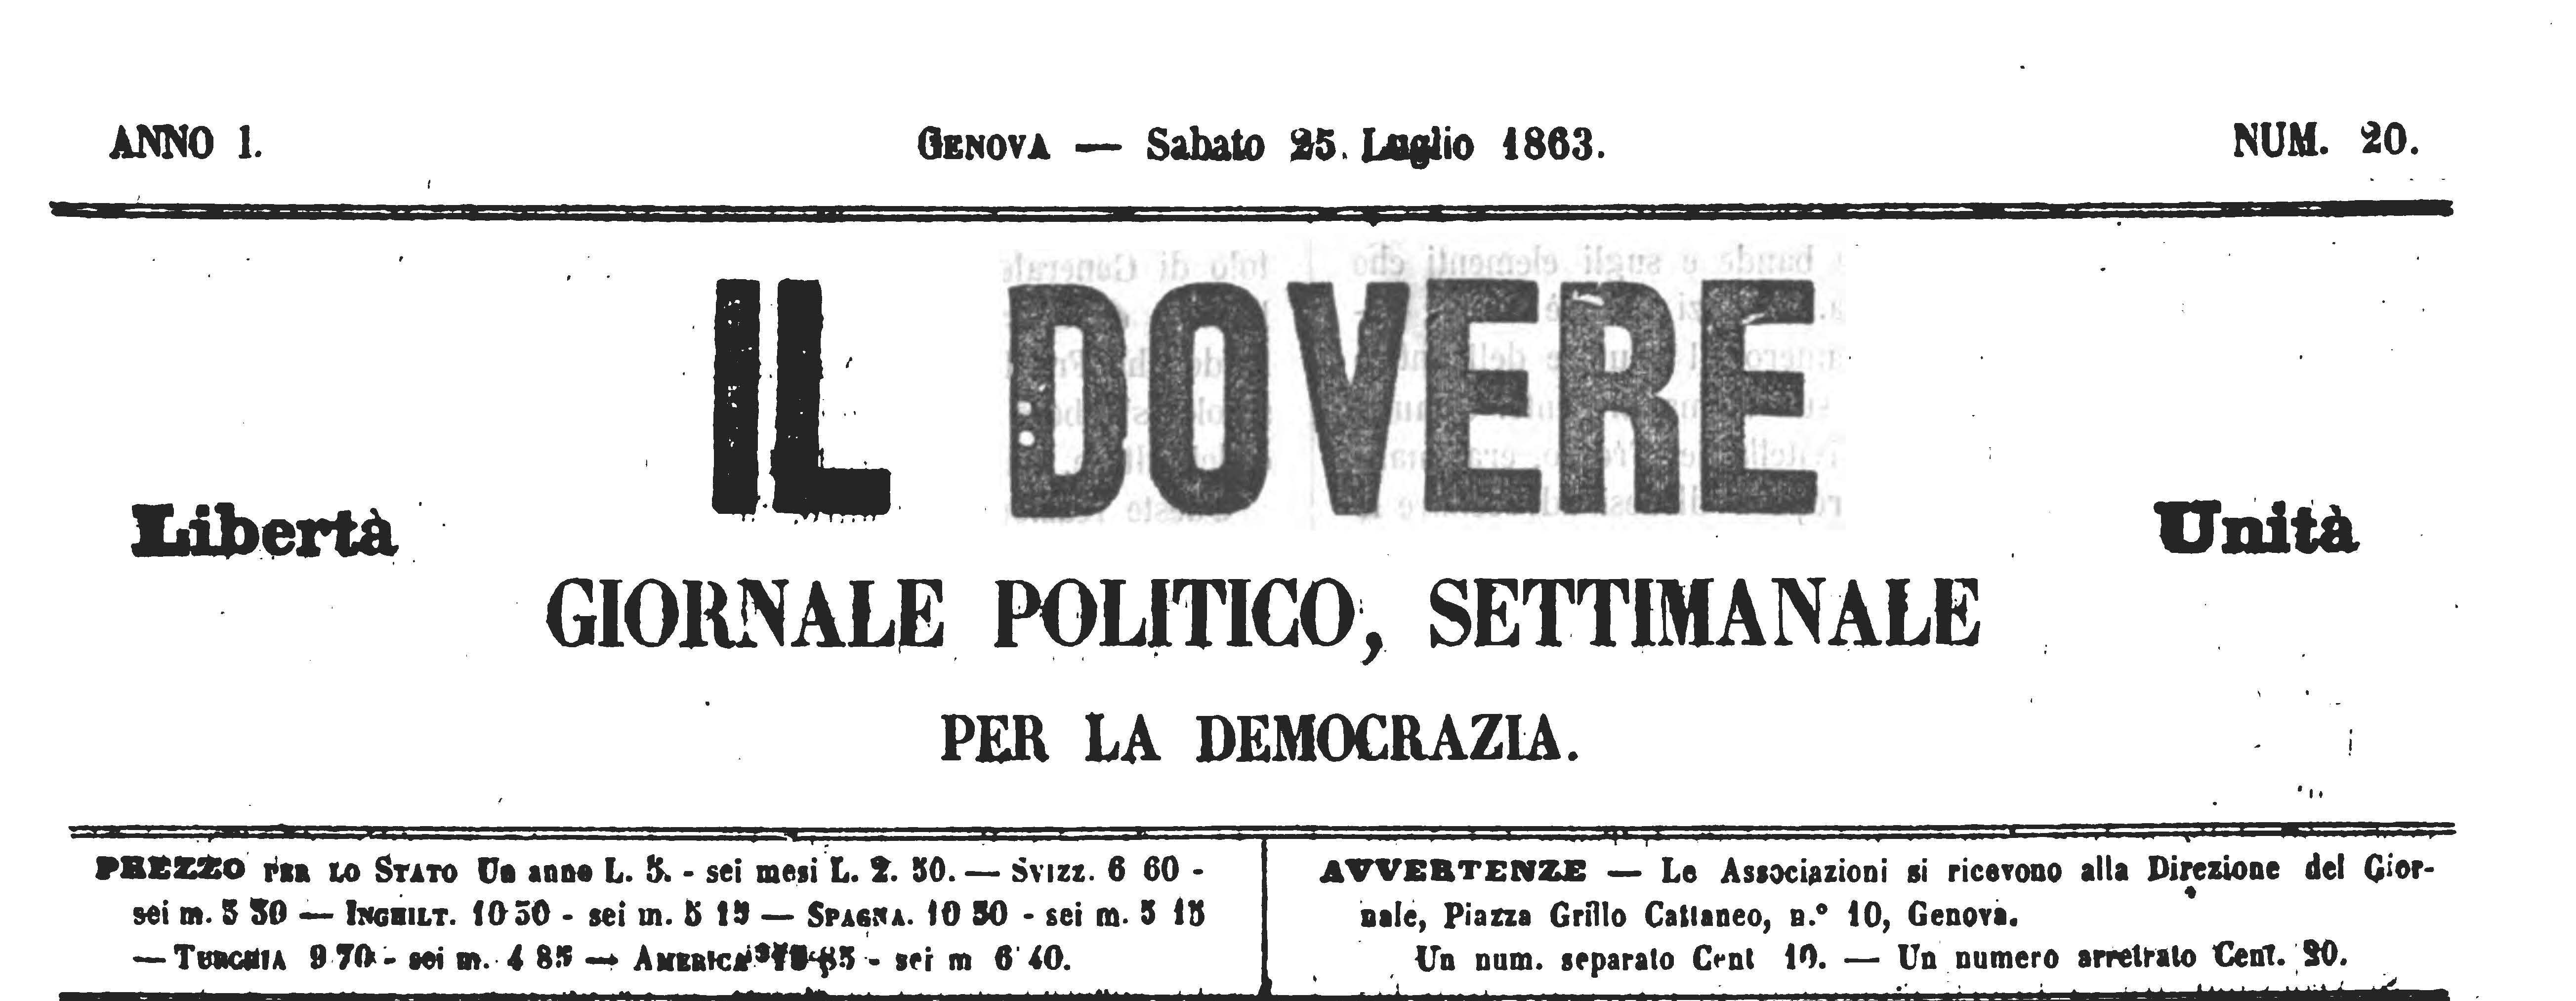 dovere n 20